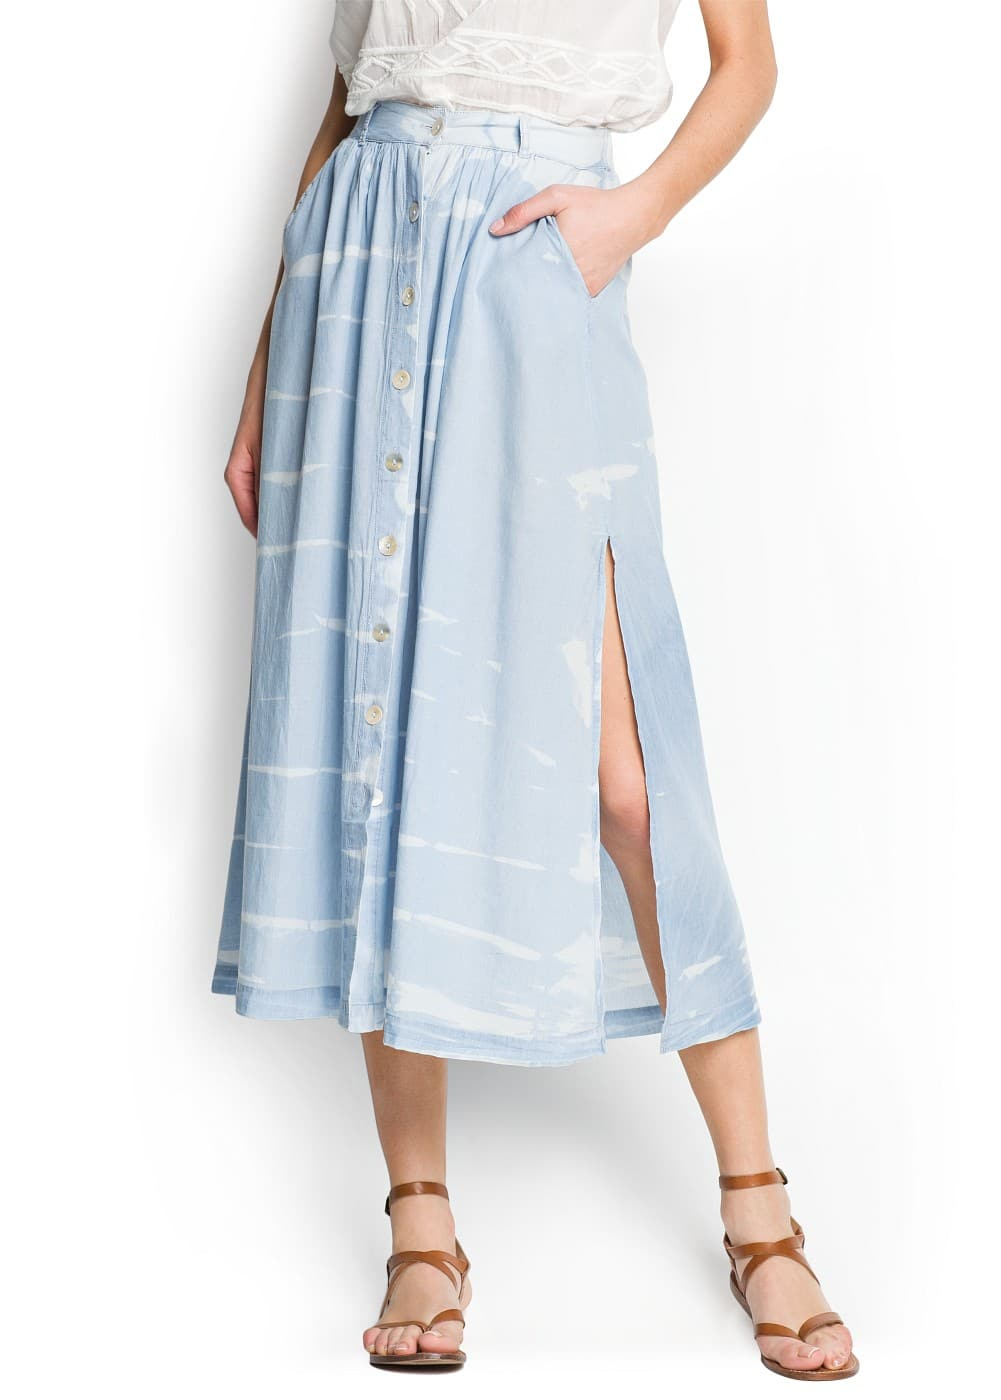 Tie-dye effect cotton long skirt